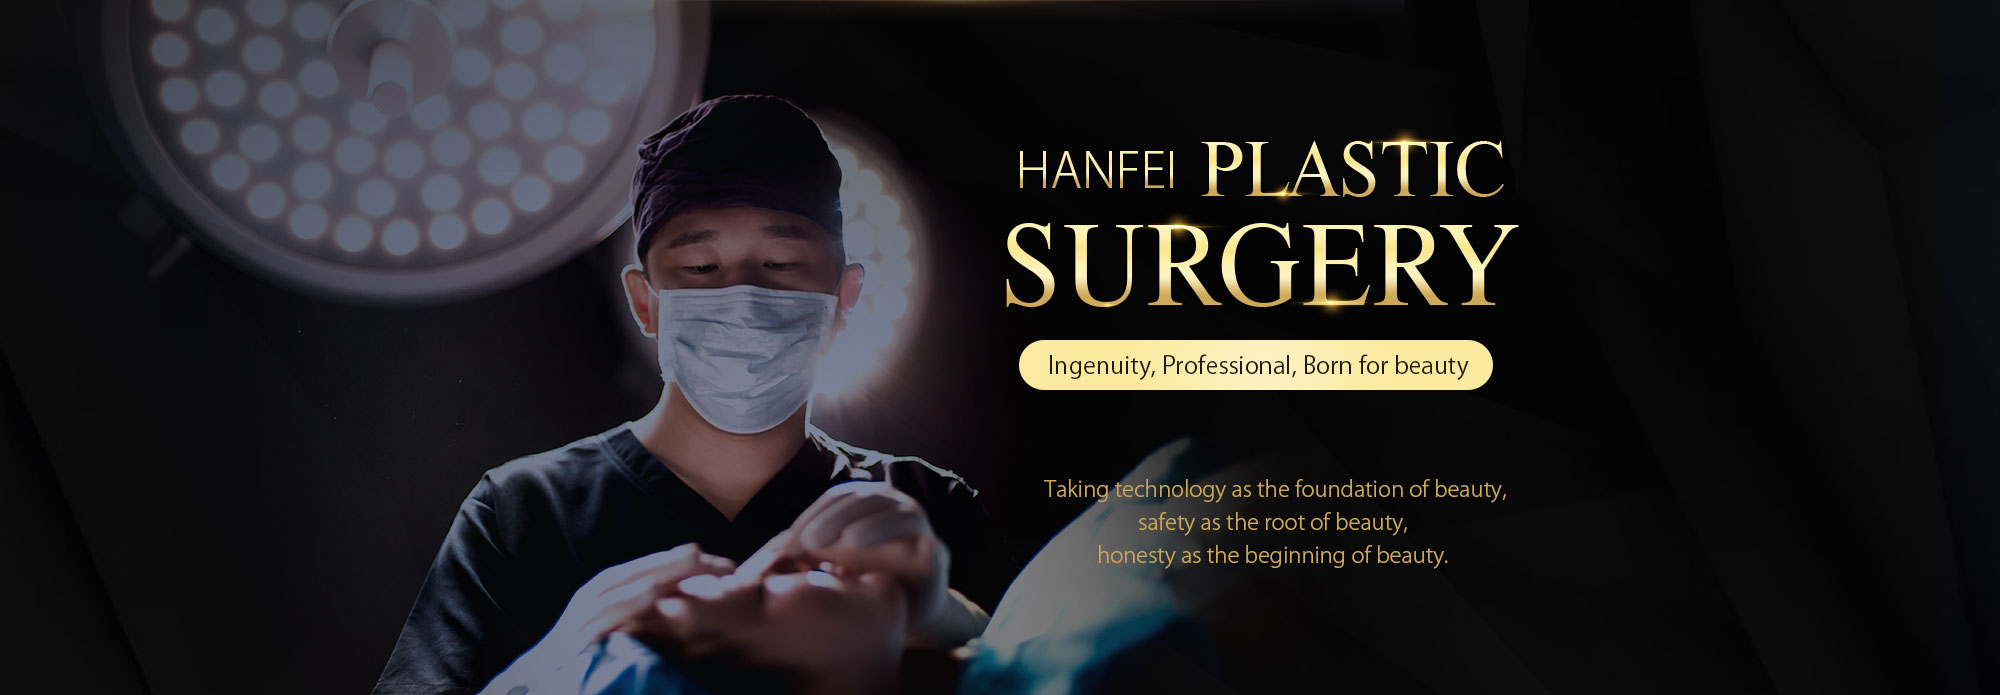 cosmetic surgeries photos in hanfei china